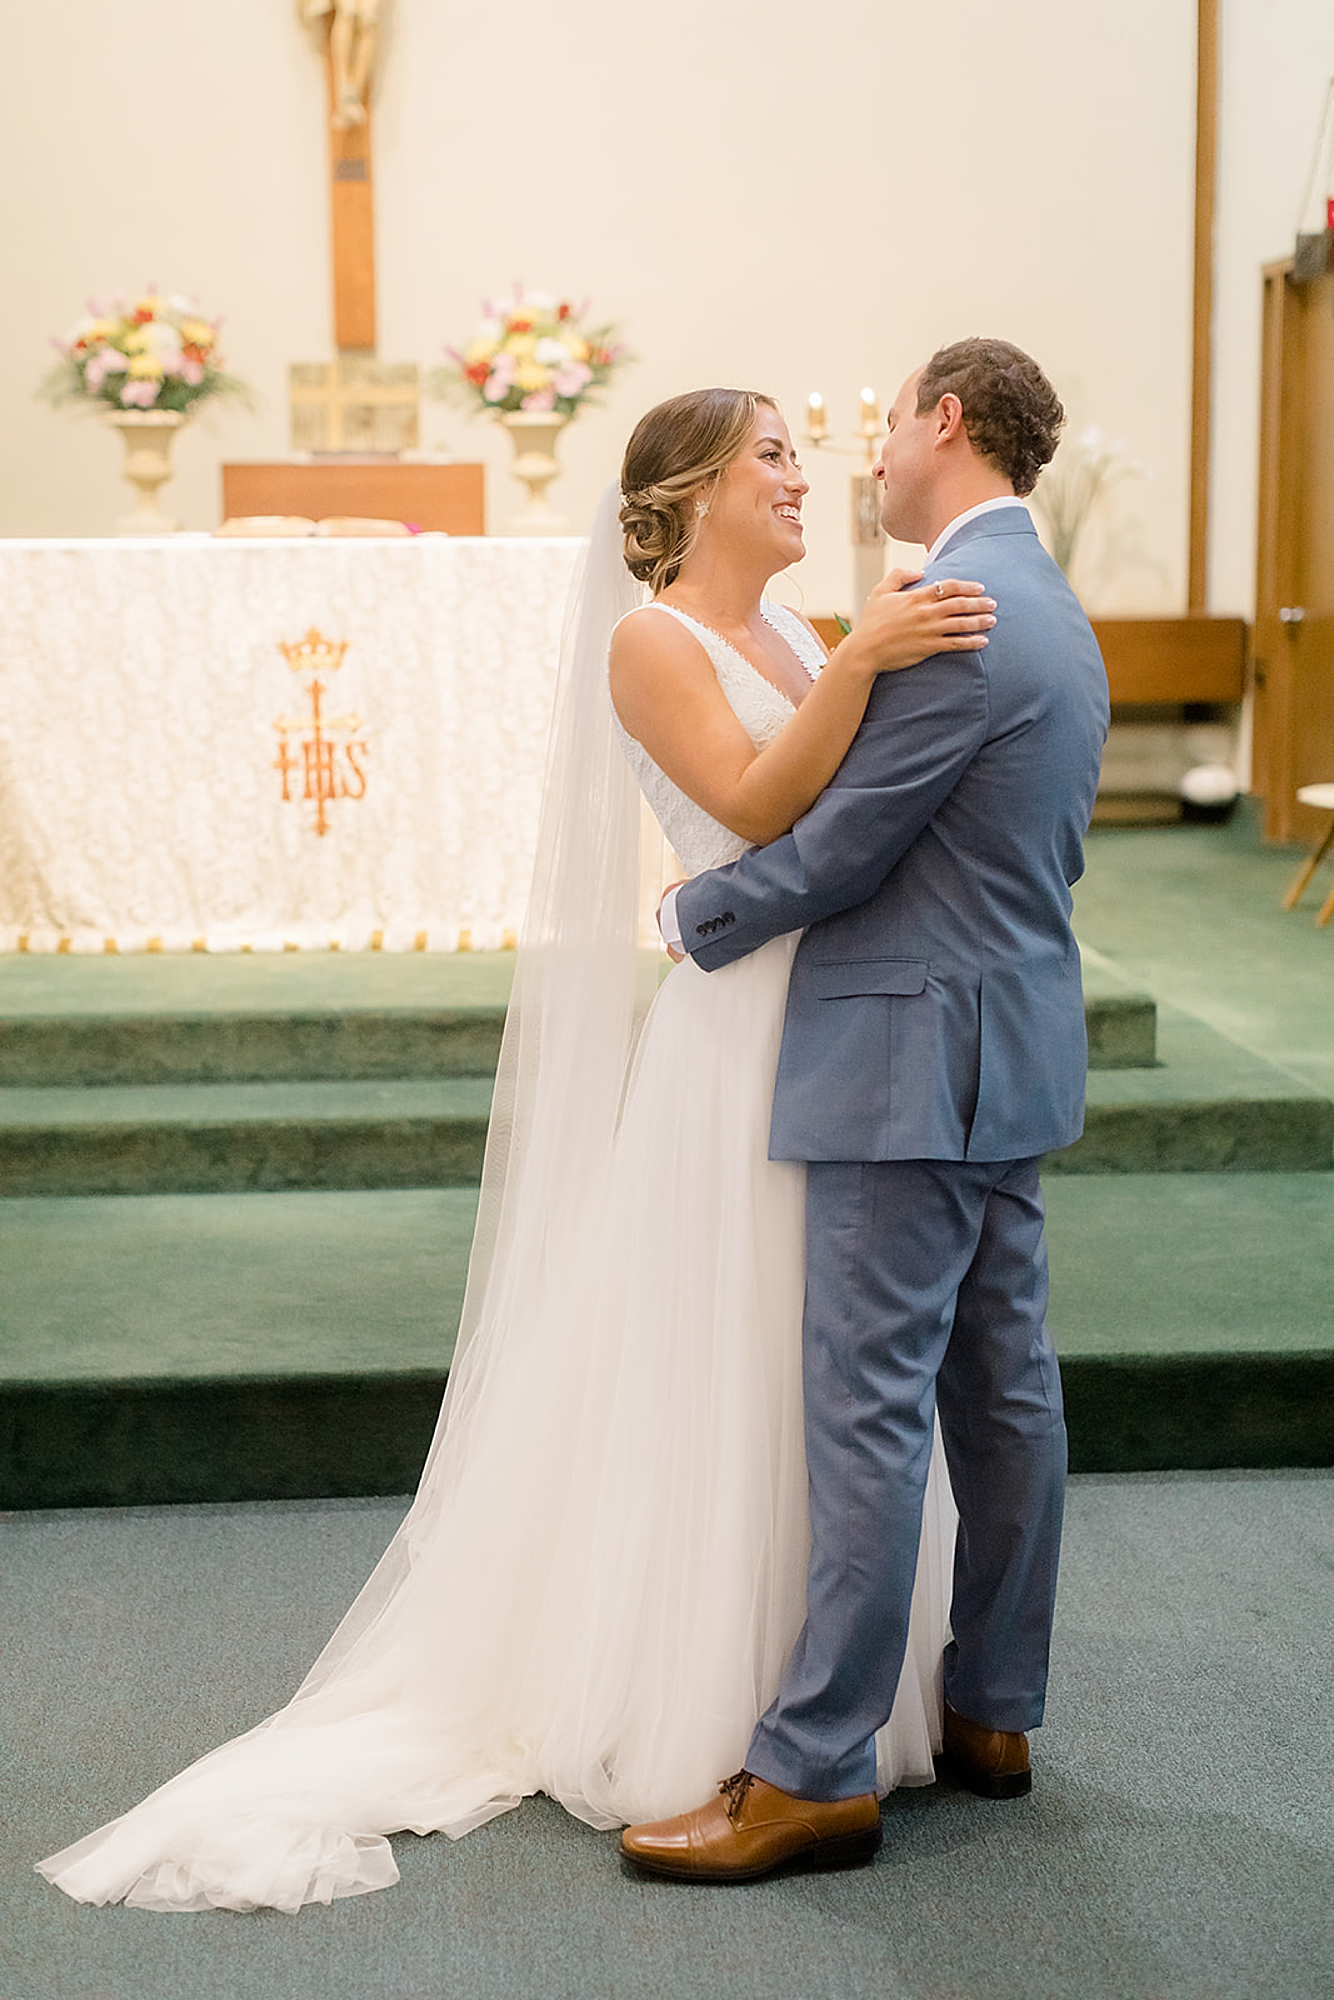 Ocean City New Jersey Wedding Photography by Magdalena Studios 0013